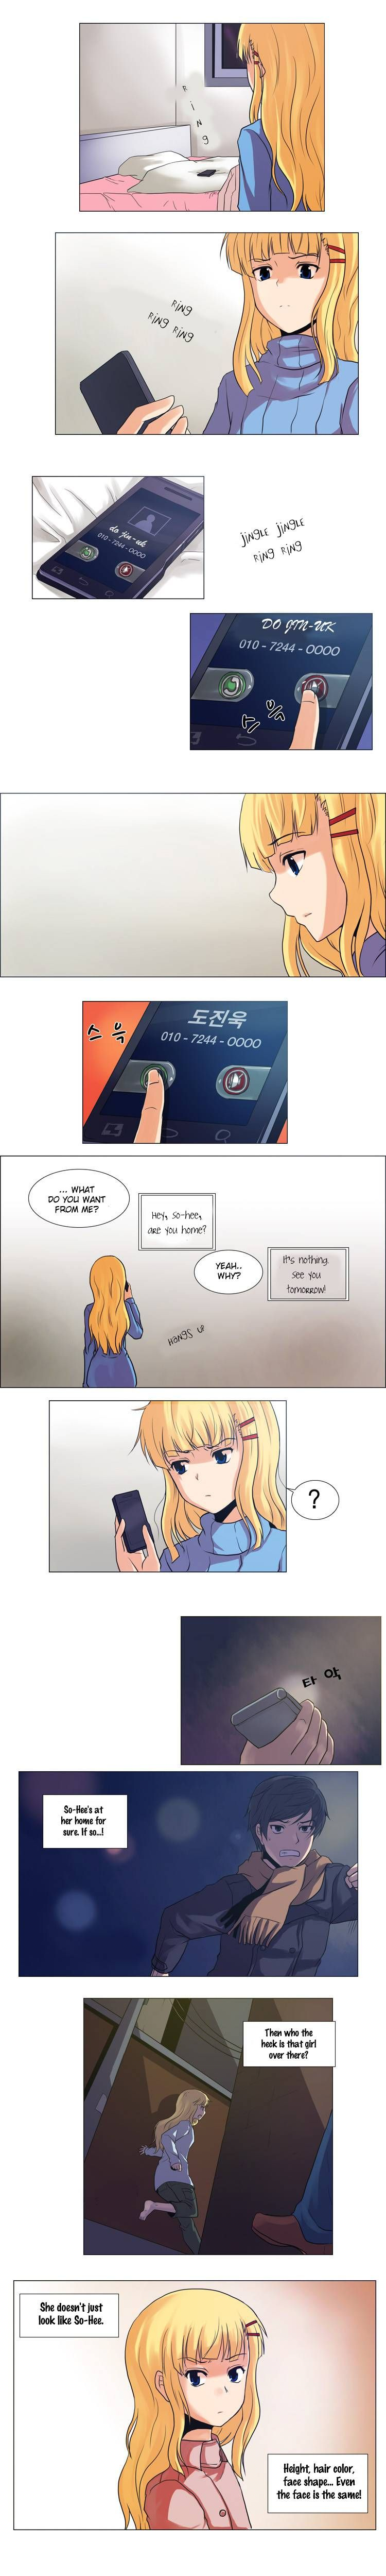 The Legend of Lady Mirror 2 Page 3